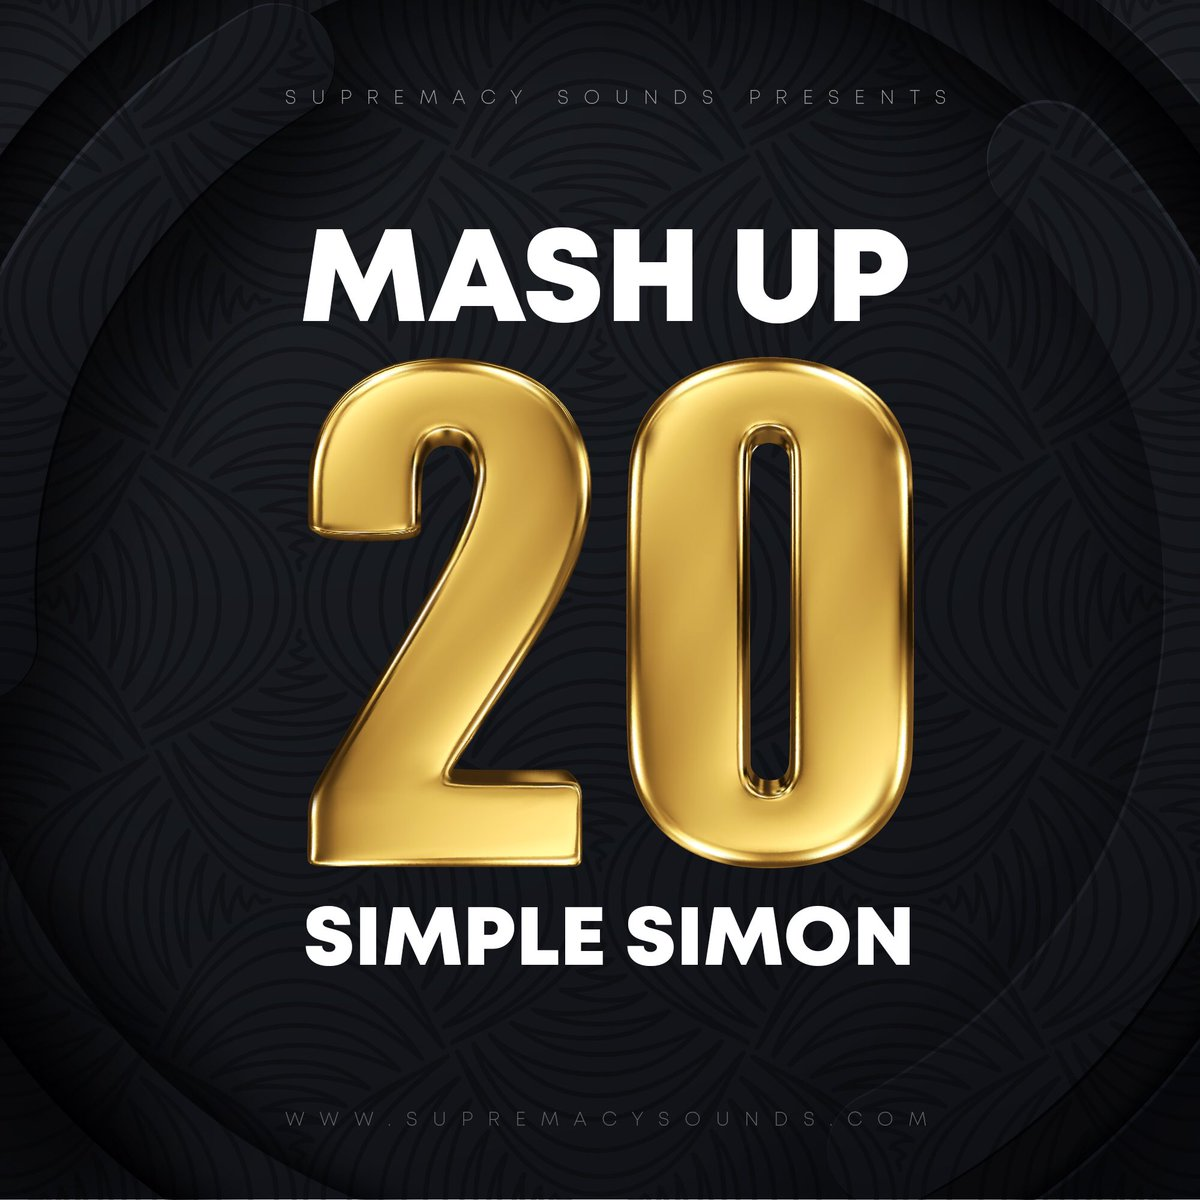 simple simon (@djsimplesimon) | Twitter